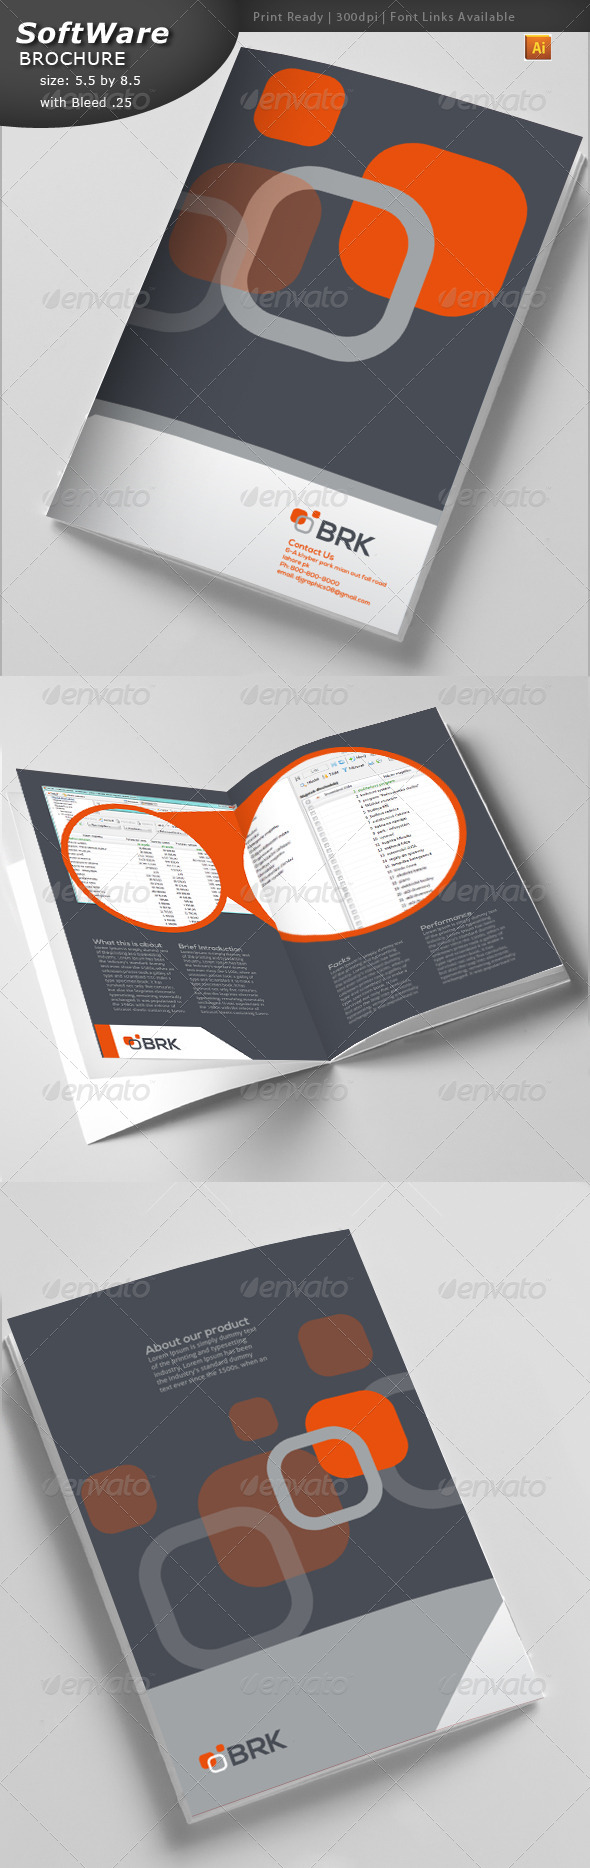 GraphicRiver IT Brochure 4580898